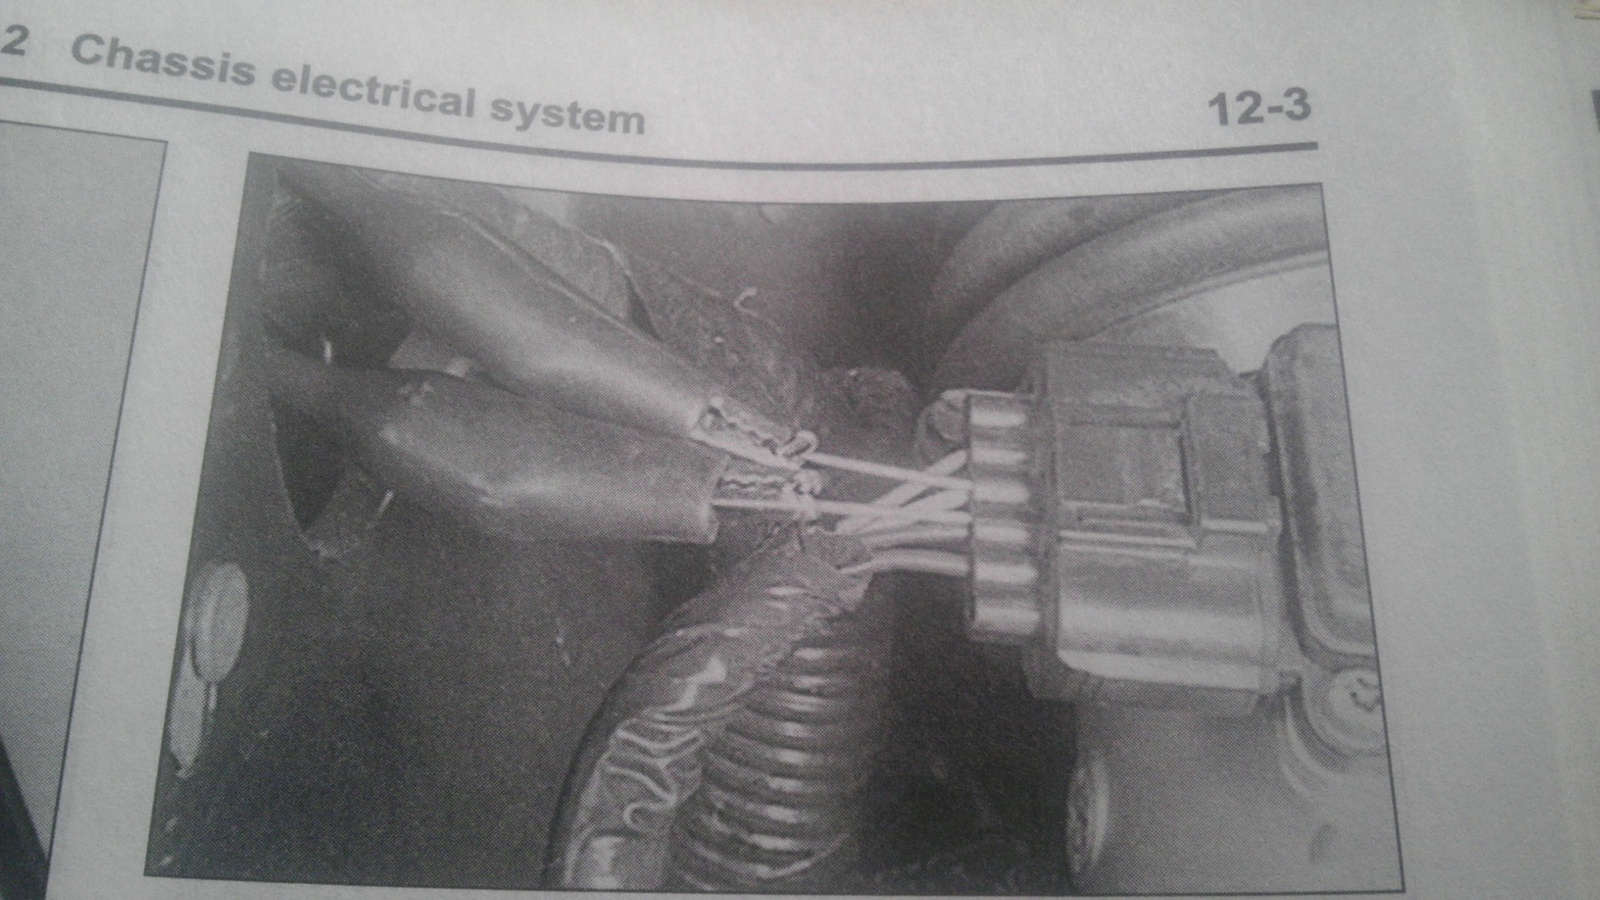 Chrysler Sebring Questions 2004 27 Knock Sensor Cargurus Schematic Lead To The Signal Wire And Negative Ground Run Engine Should Increase As Rpm Increases